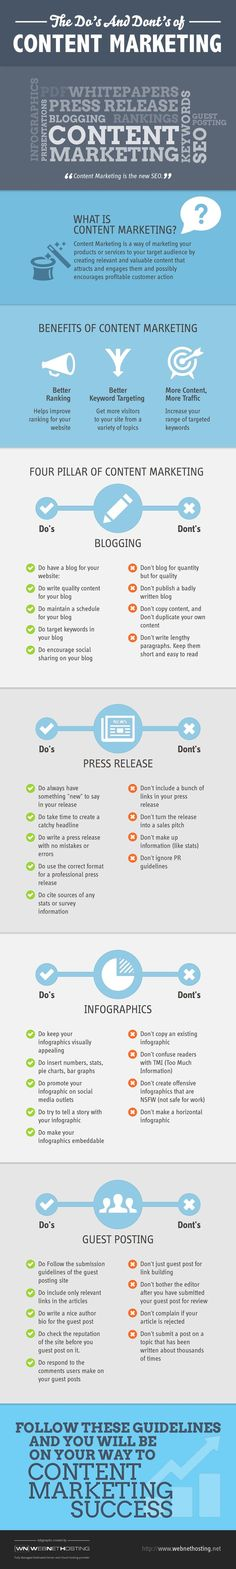 The Dos and Dont's of Content Marketing Infographic We hear about content marketing a lot these days. Many folks throw that phrase around but don't explain how to approach content marketing the right way. Inbound Marketing, Mundo Marketing, Marketing En Internet, Marketing Tactics, Content Marketing Strategy, Marketing And Advertising, Business Marketing, Online Marketing, Social Media Marketing